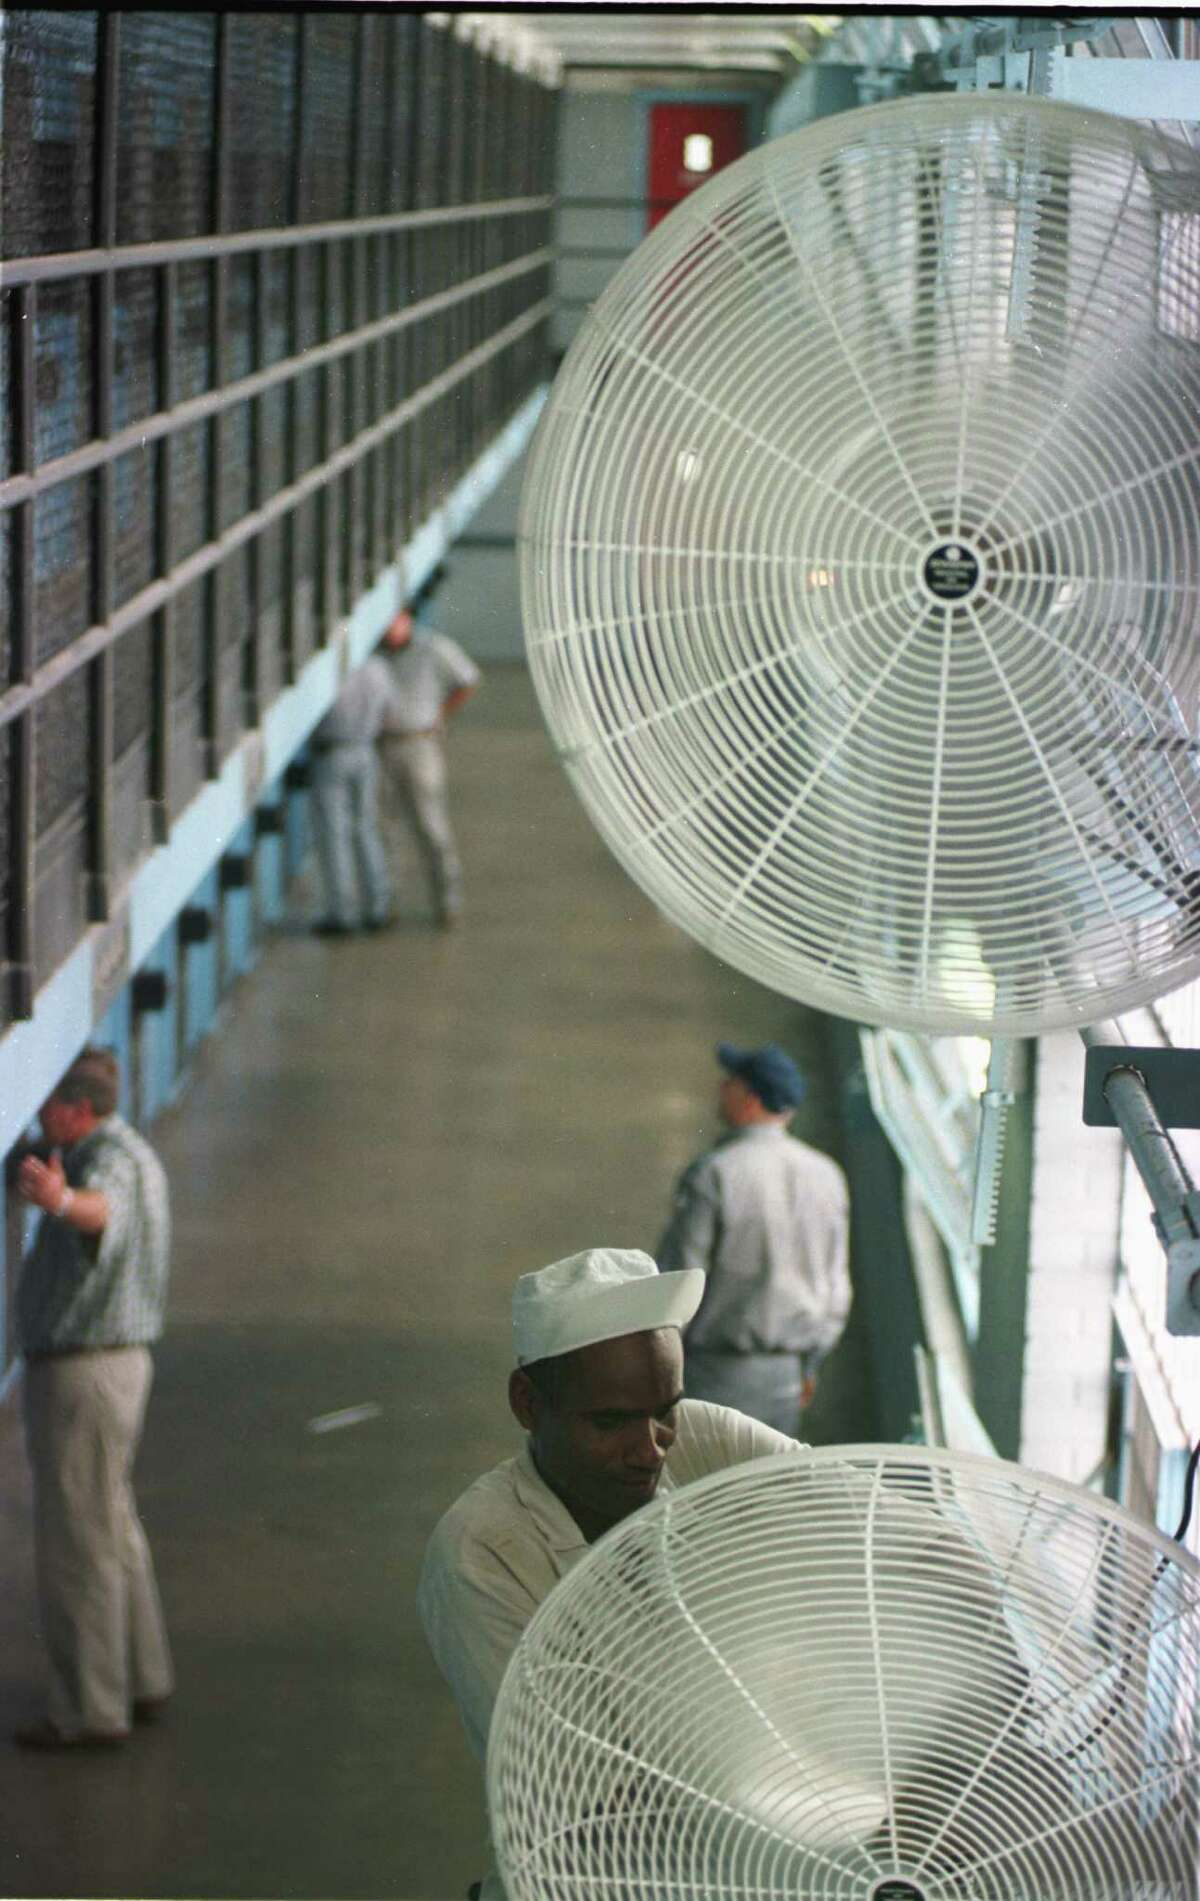 Wall-mounted fans blow a steady breeze in one section of the Wynne unit. Throughout the prison system, two inmates have died from what is believed to be heat-related causes.